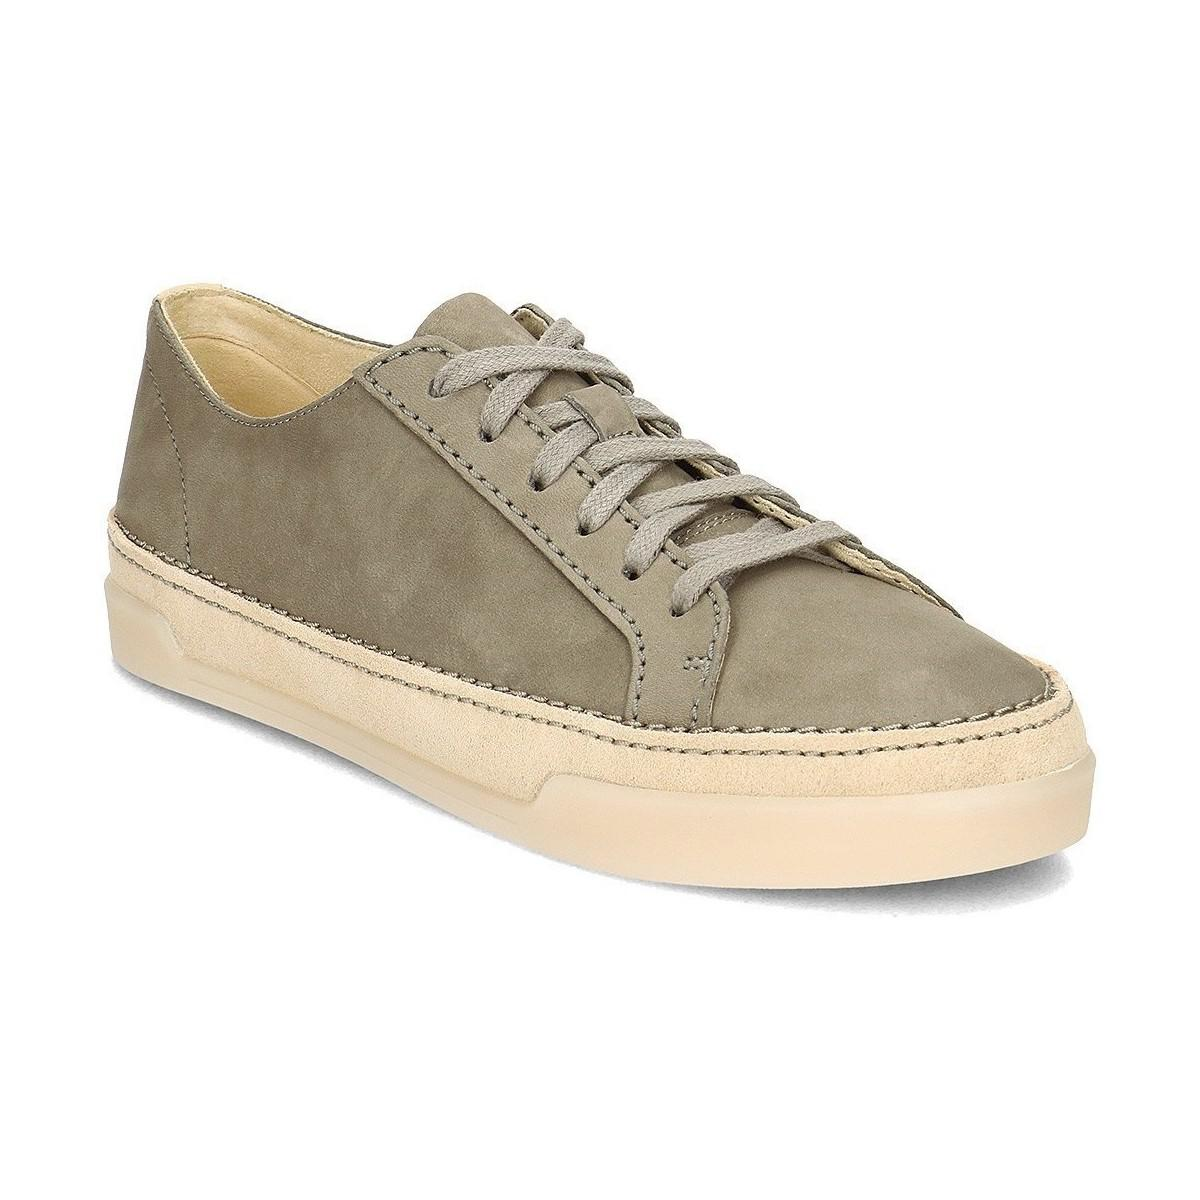 Clarks Hidi Holly women's Shoes (Trainers) in Free Shipping 2018 New Buy Cheap Outlet Locations Manchester Great Sale Cheap Price tiMHCpkN